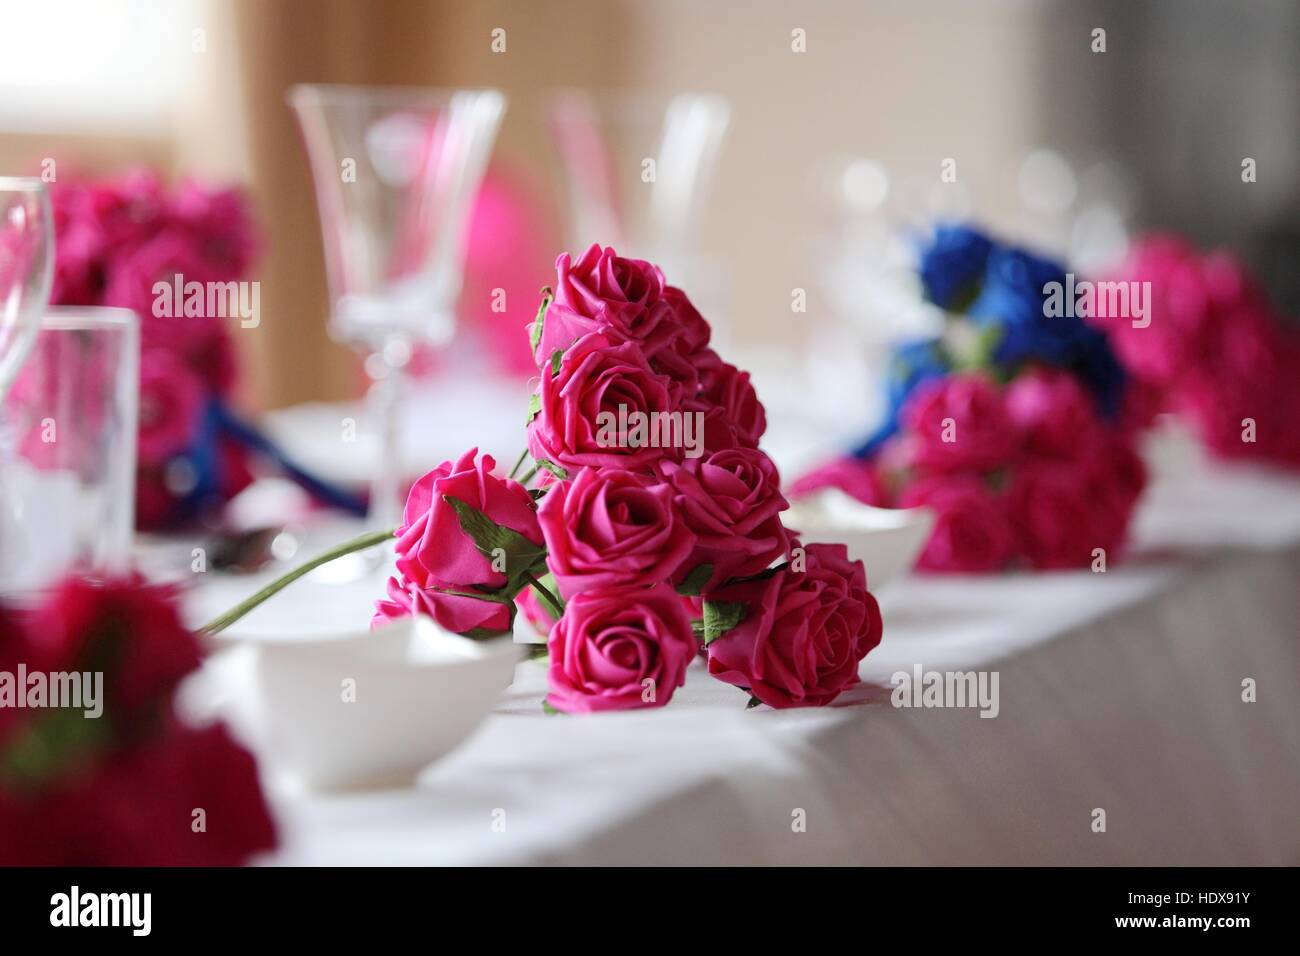 Wedding Breakfast Table Laid Ready For Use With Pink And Blue Silk